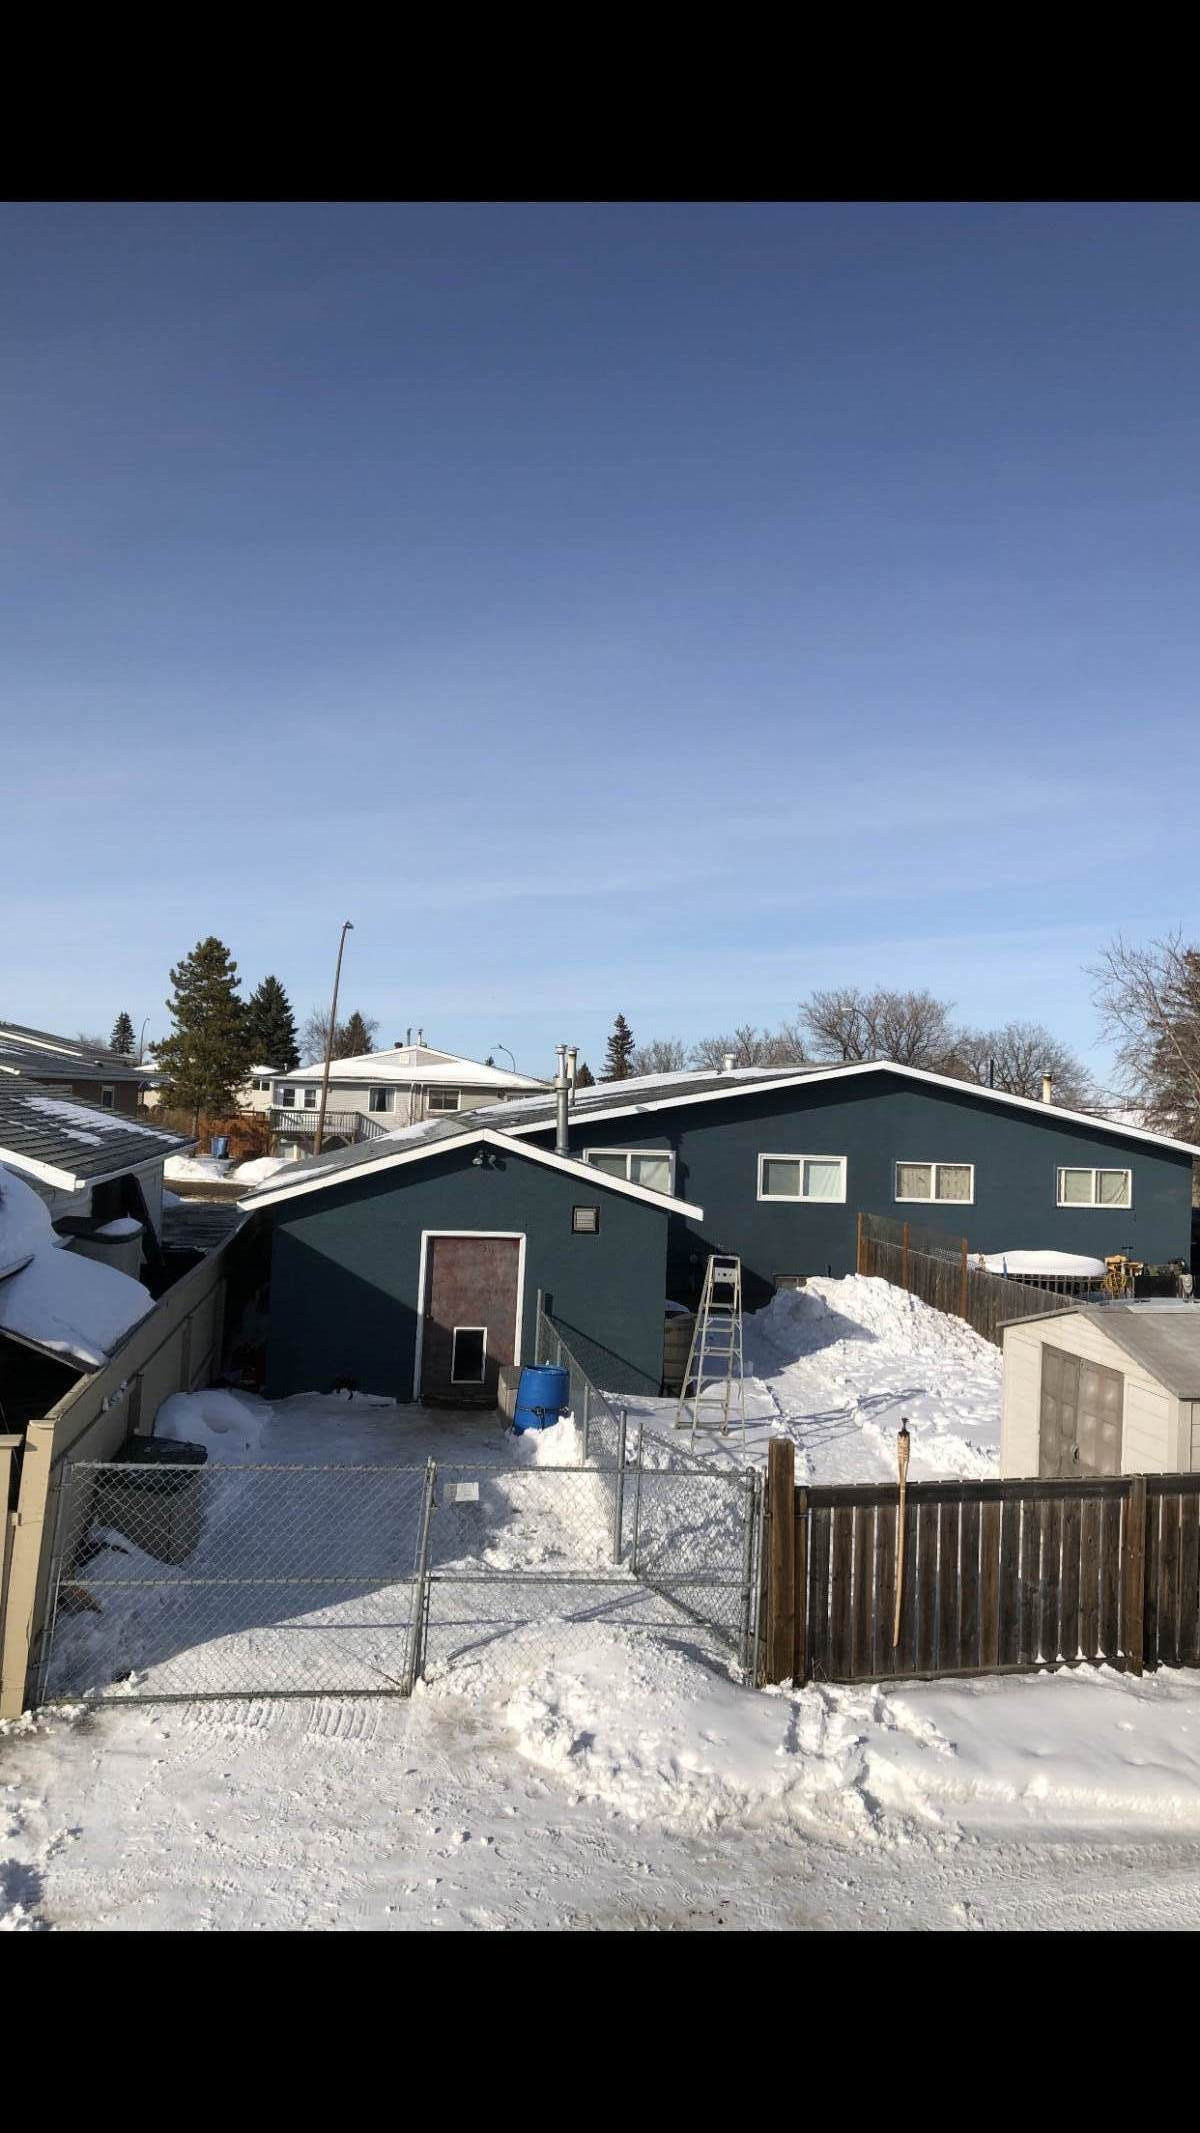 Duplex For Sale in Fort McMurray, AB - 3+1 bed, 2 bath